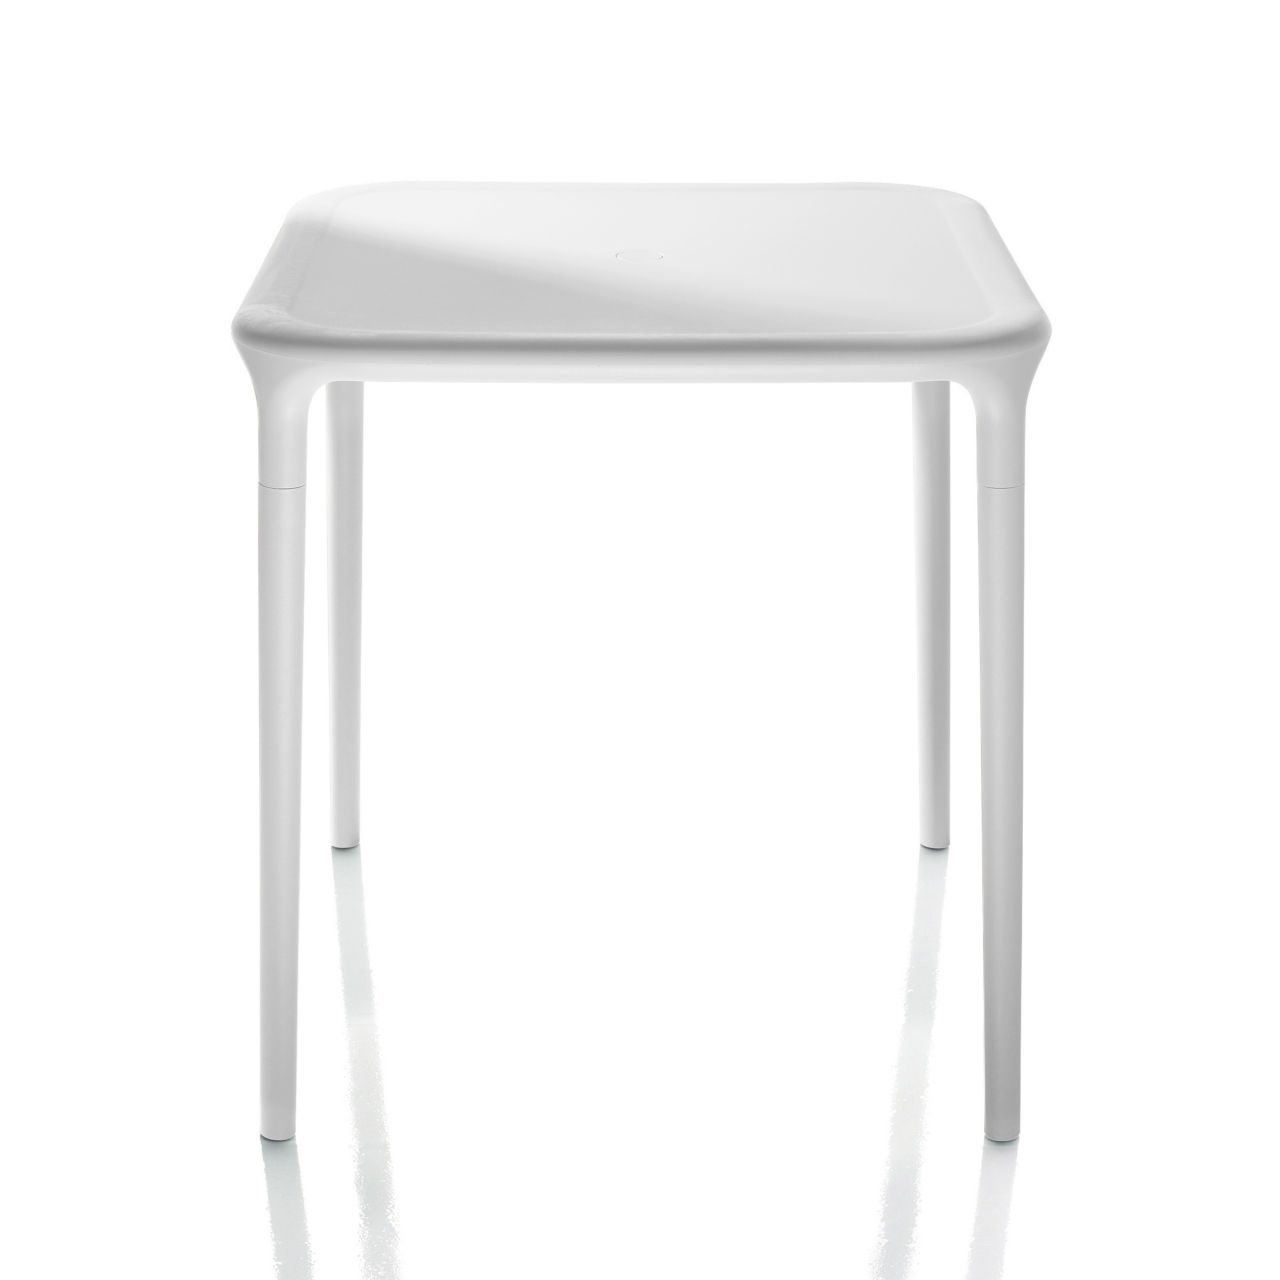 Air Table in White by Magis